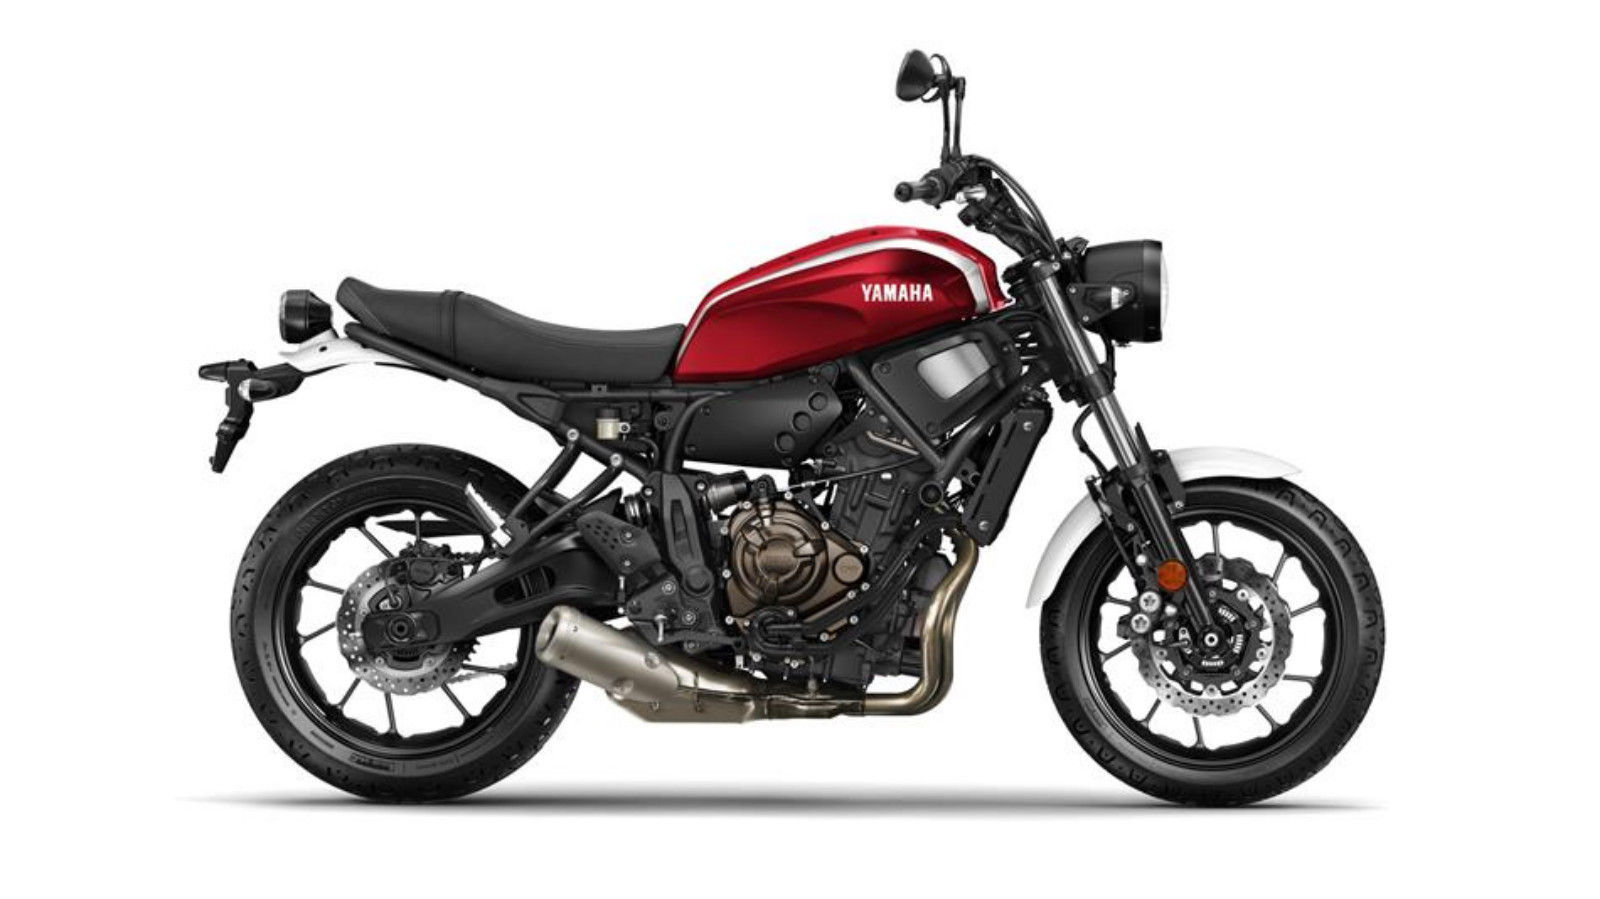 XSR900 ABS Modell 2018 RACING RED SOFORT!